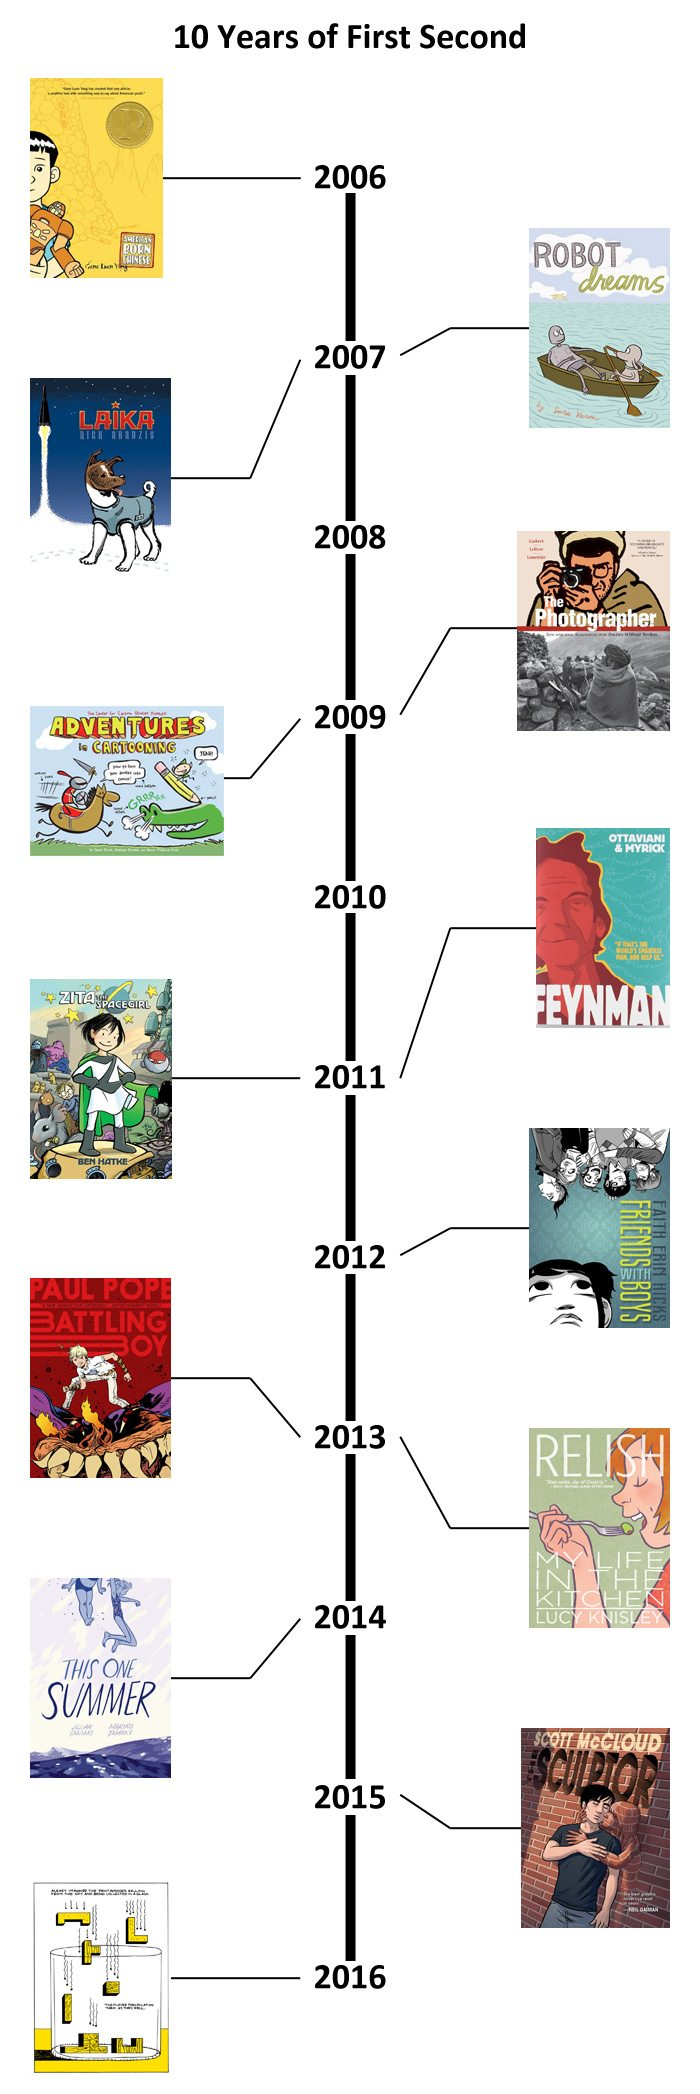 American Born Chinese by Gene Luen Yang (2006) Robot Dreams by Sara Varon (2007) Laika by Nick Abadzis (2007) The Photographer by Emmanuel Guibert, Didier Lefèvre, and Frederic Lemercier (2009) Adventures in Cartooning by Alexis Frederick-Frost and Andrew Arnold (2009) Feynman by Jim Ottaviani and Leland Myrick (2011) Zita the Spacegirl by Ben Hatke (2011) Friends With Boys by Faith Erin Hicks (2012) Battling Boy by Paul Pope (2013) Relish by Lucy Knisley (2013) This One Summer by Mariko Tamaki and Jillian Tamaki (2014) The Sculptor by Scott McCloud (2015) Tetris by Box Brown (coming in 2016!)